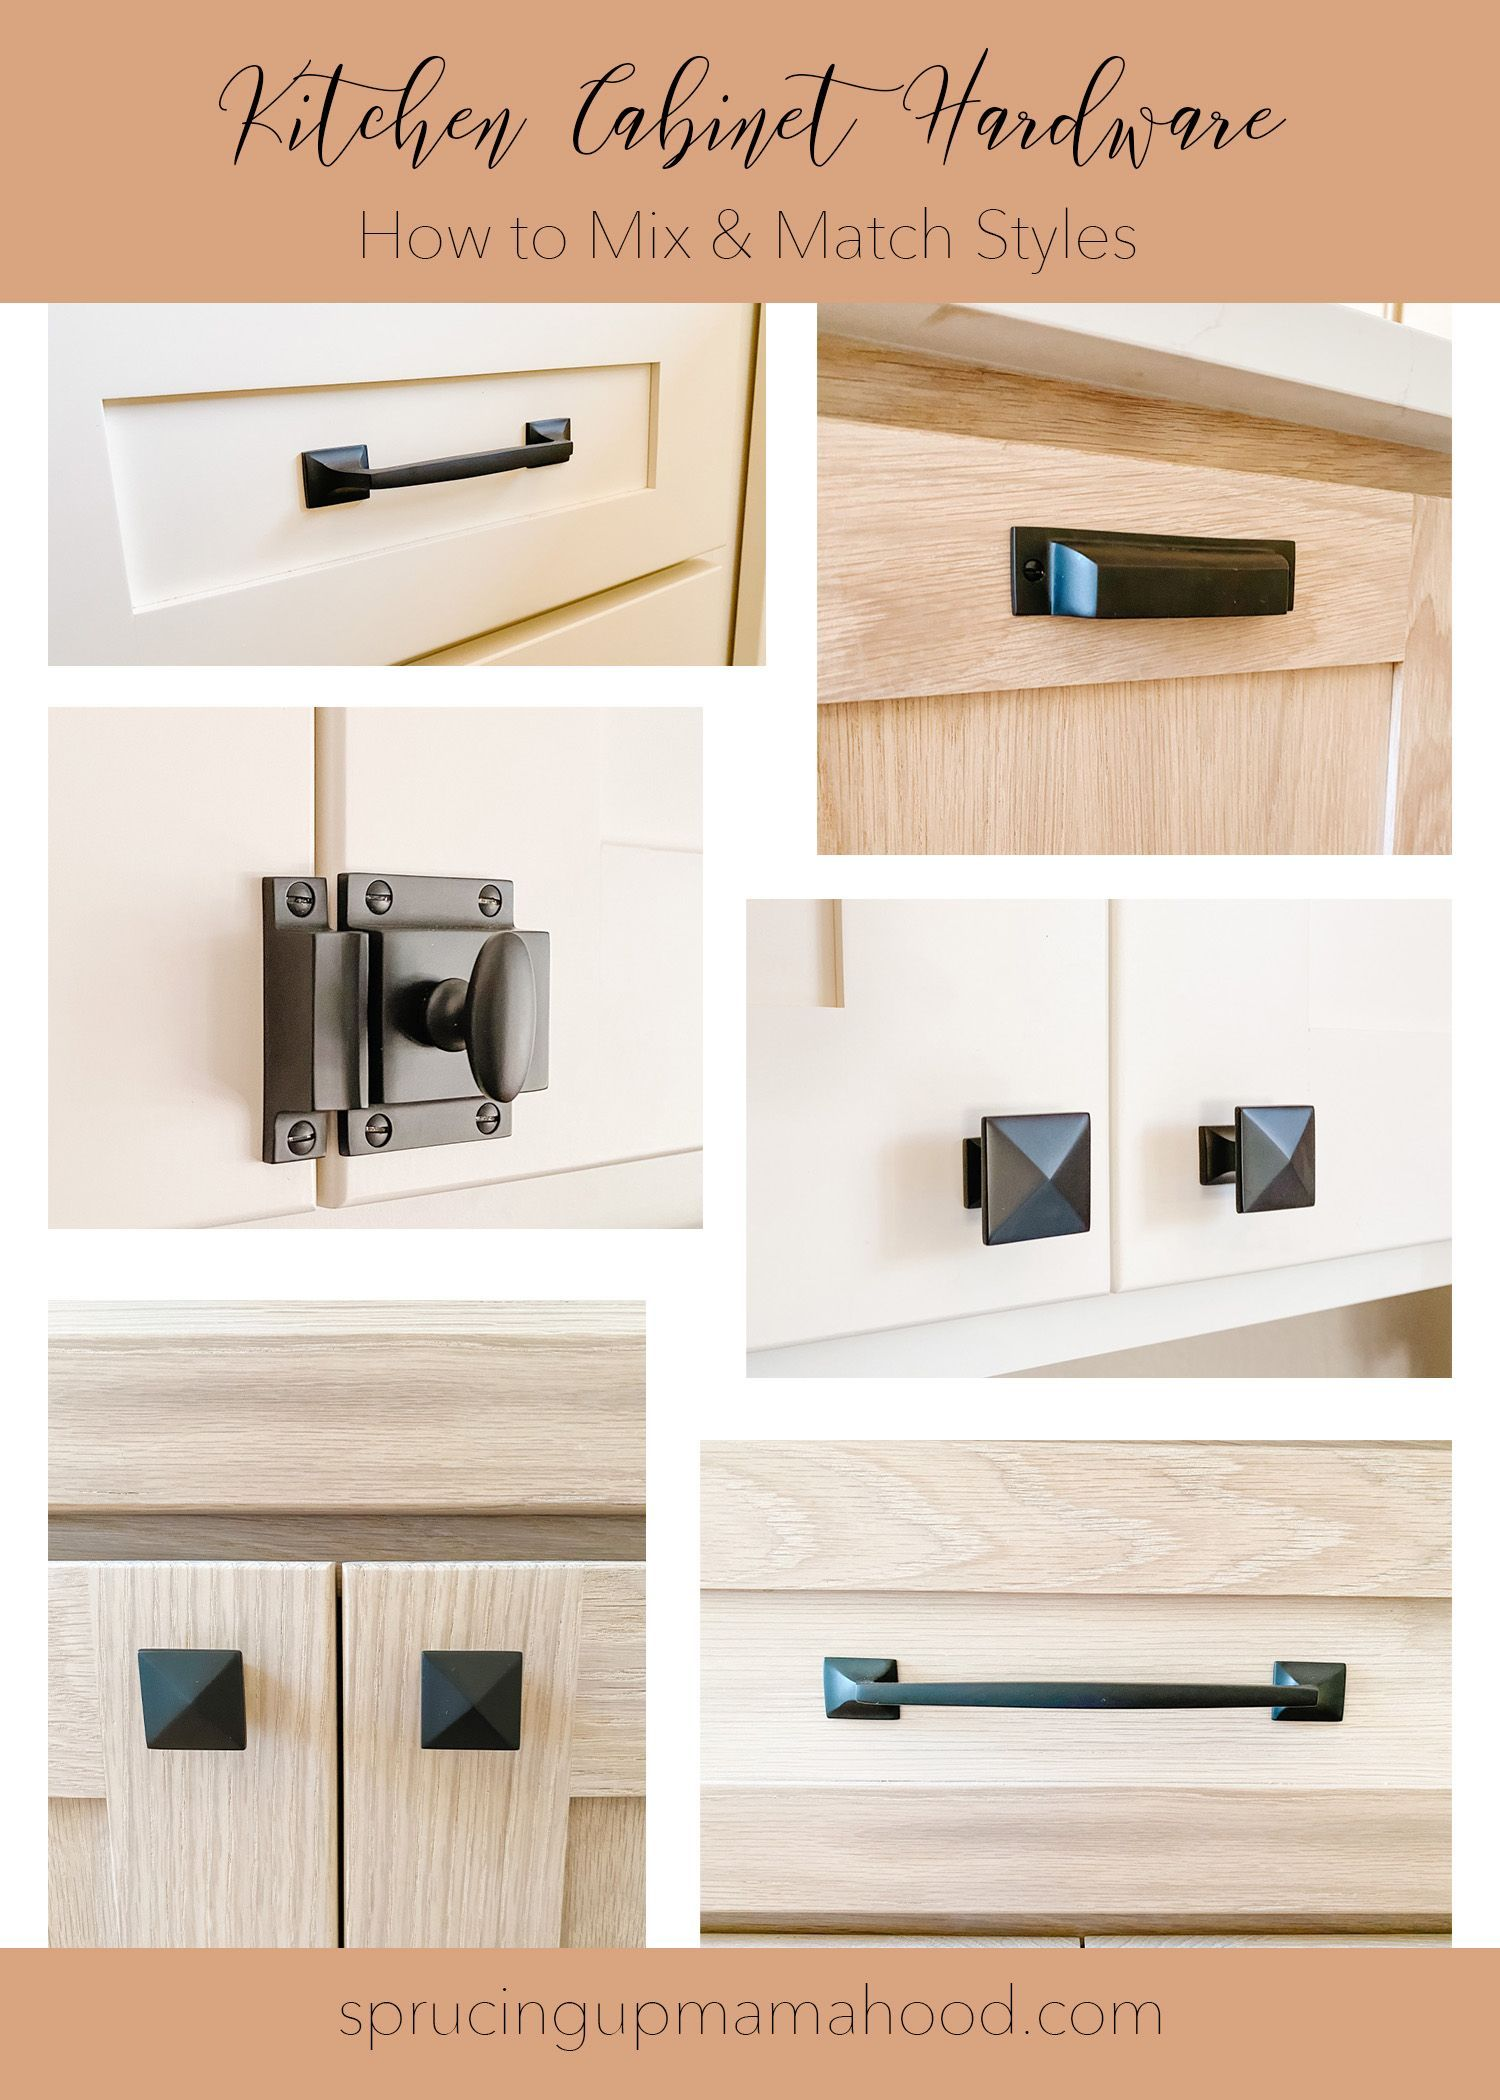 Our Kitchen Cabinet Hardware How To Mix Match Styles Sprucing Up Mamahood In 2020 Kitchen Cabinet Hardware Cabinet Hardware Types Of Kitchen Cabinets